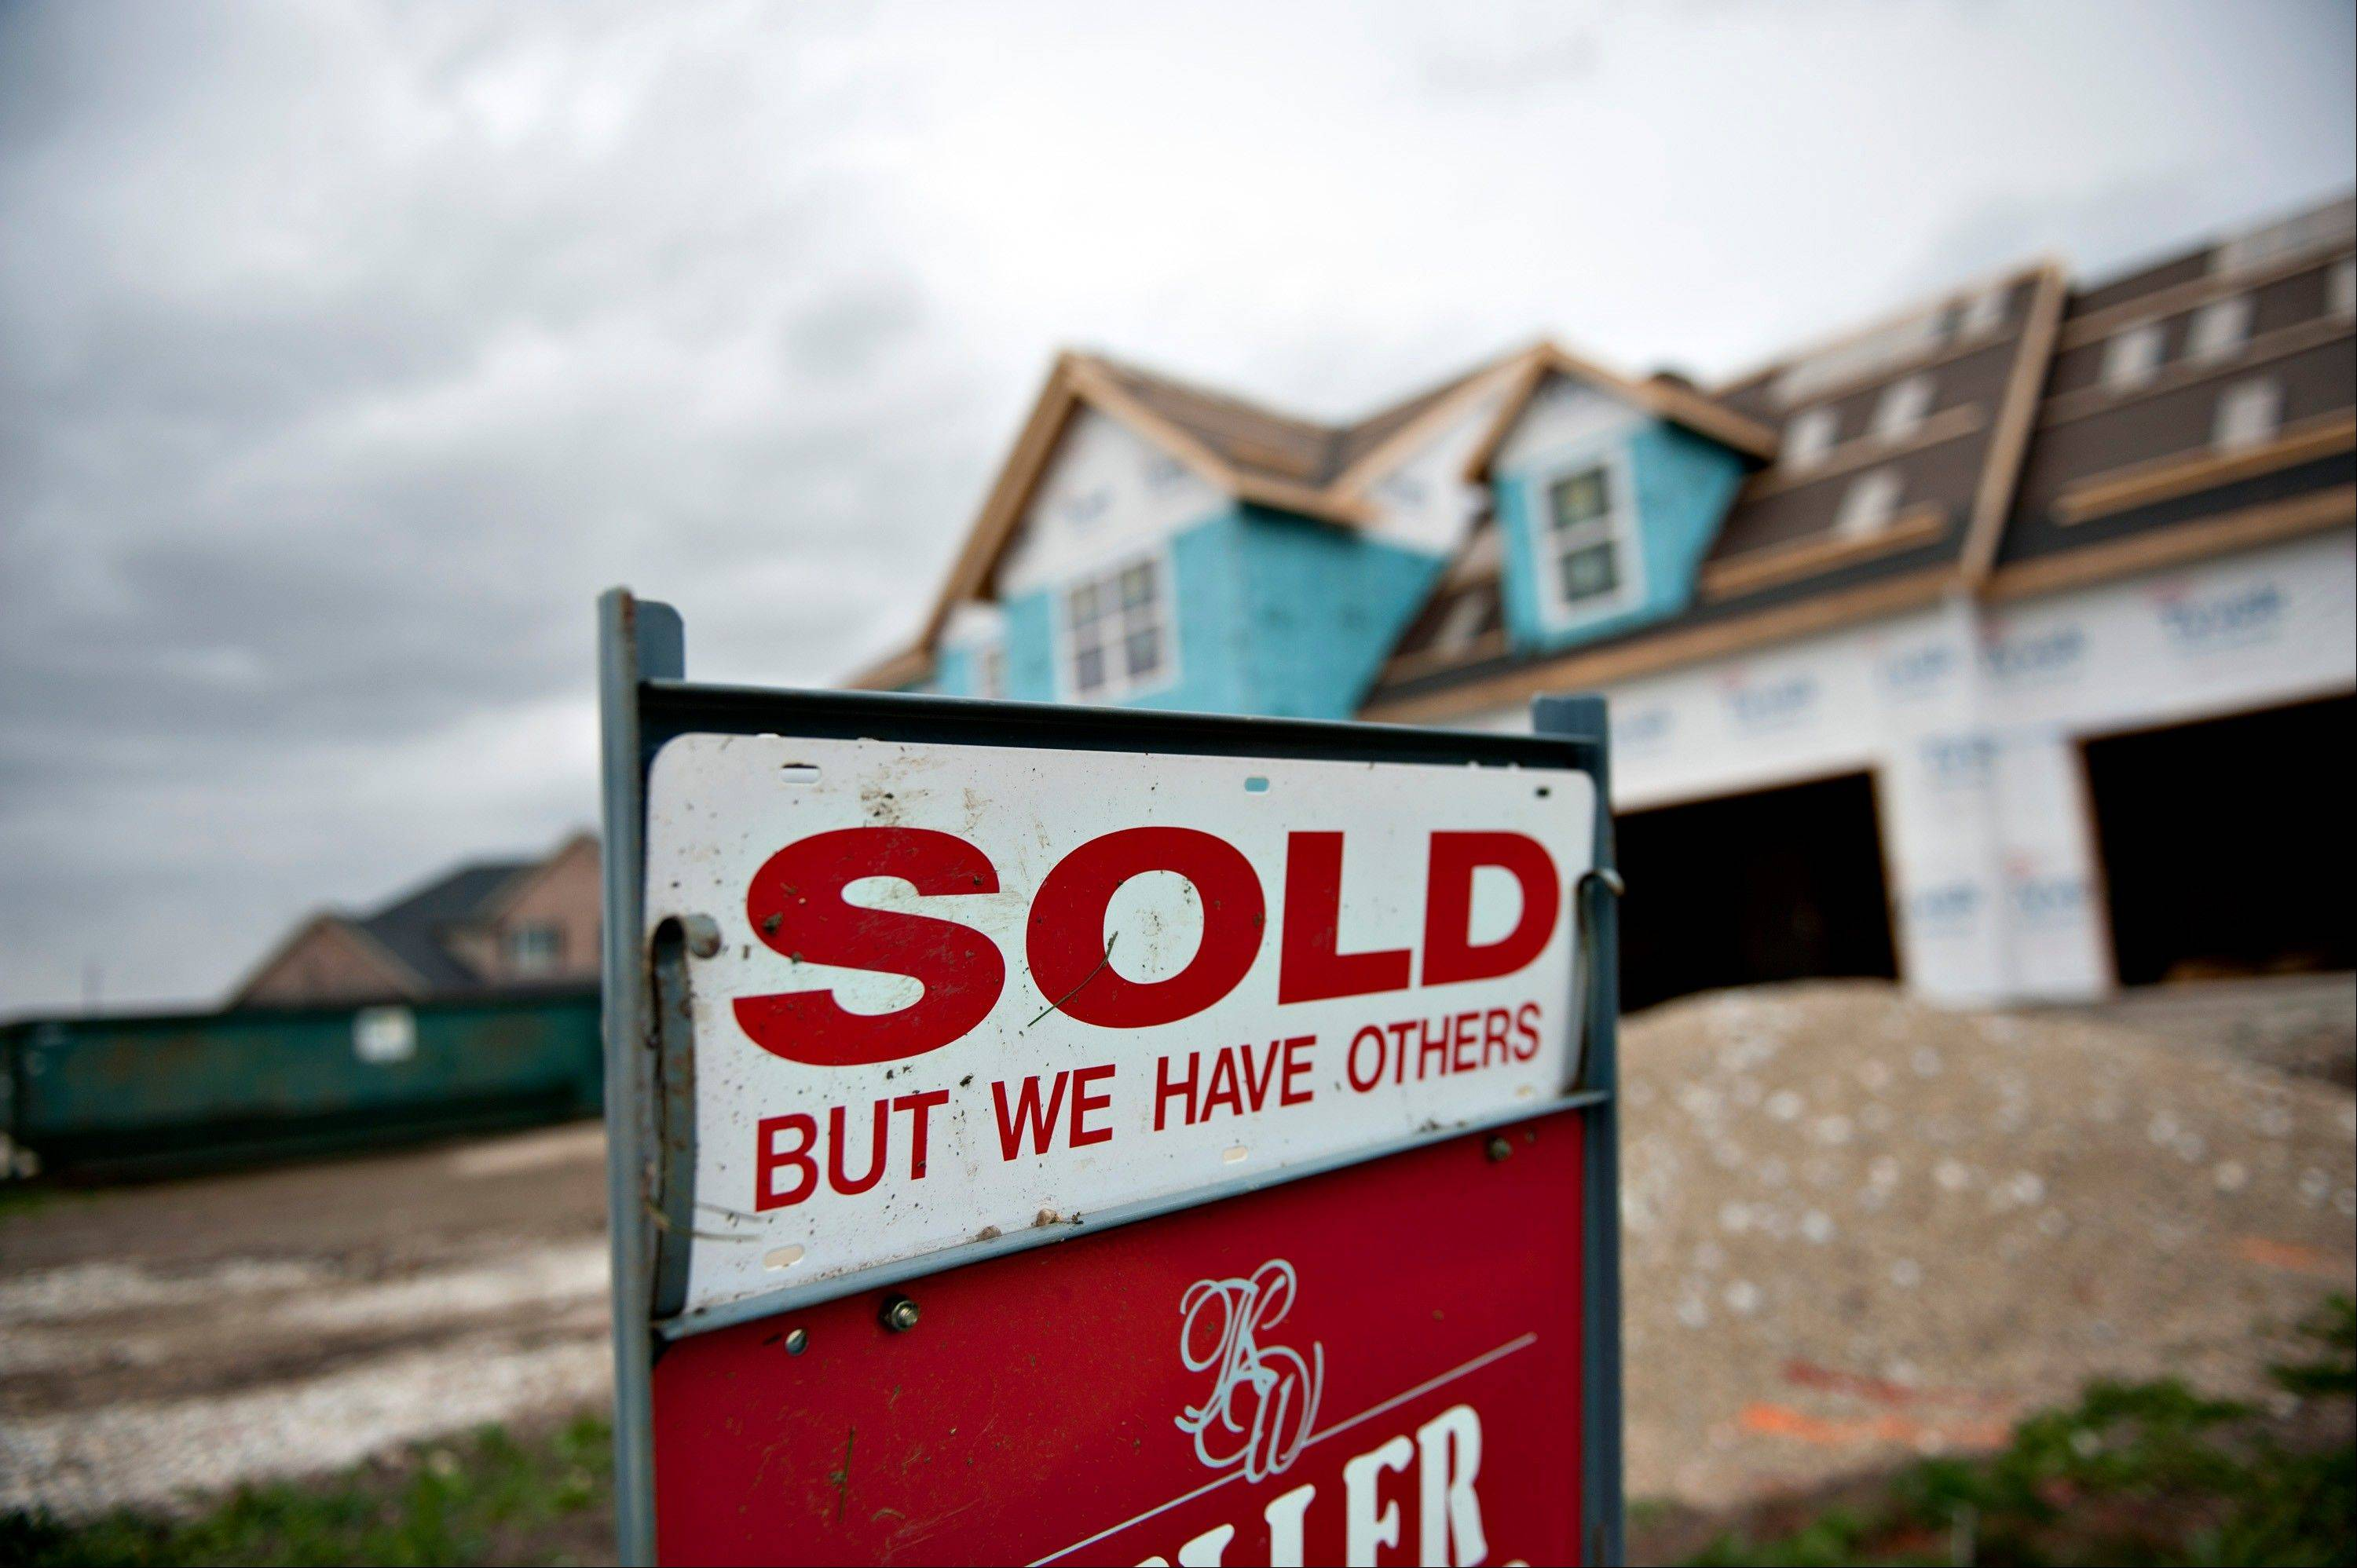 U.S. sales of new homes jumped last month to the highest level in more than two years, further evidence of a sustained housing recovery that could help lift the lackluster economy.